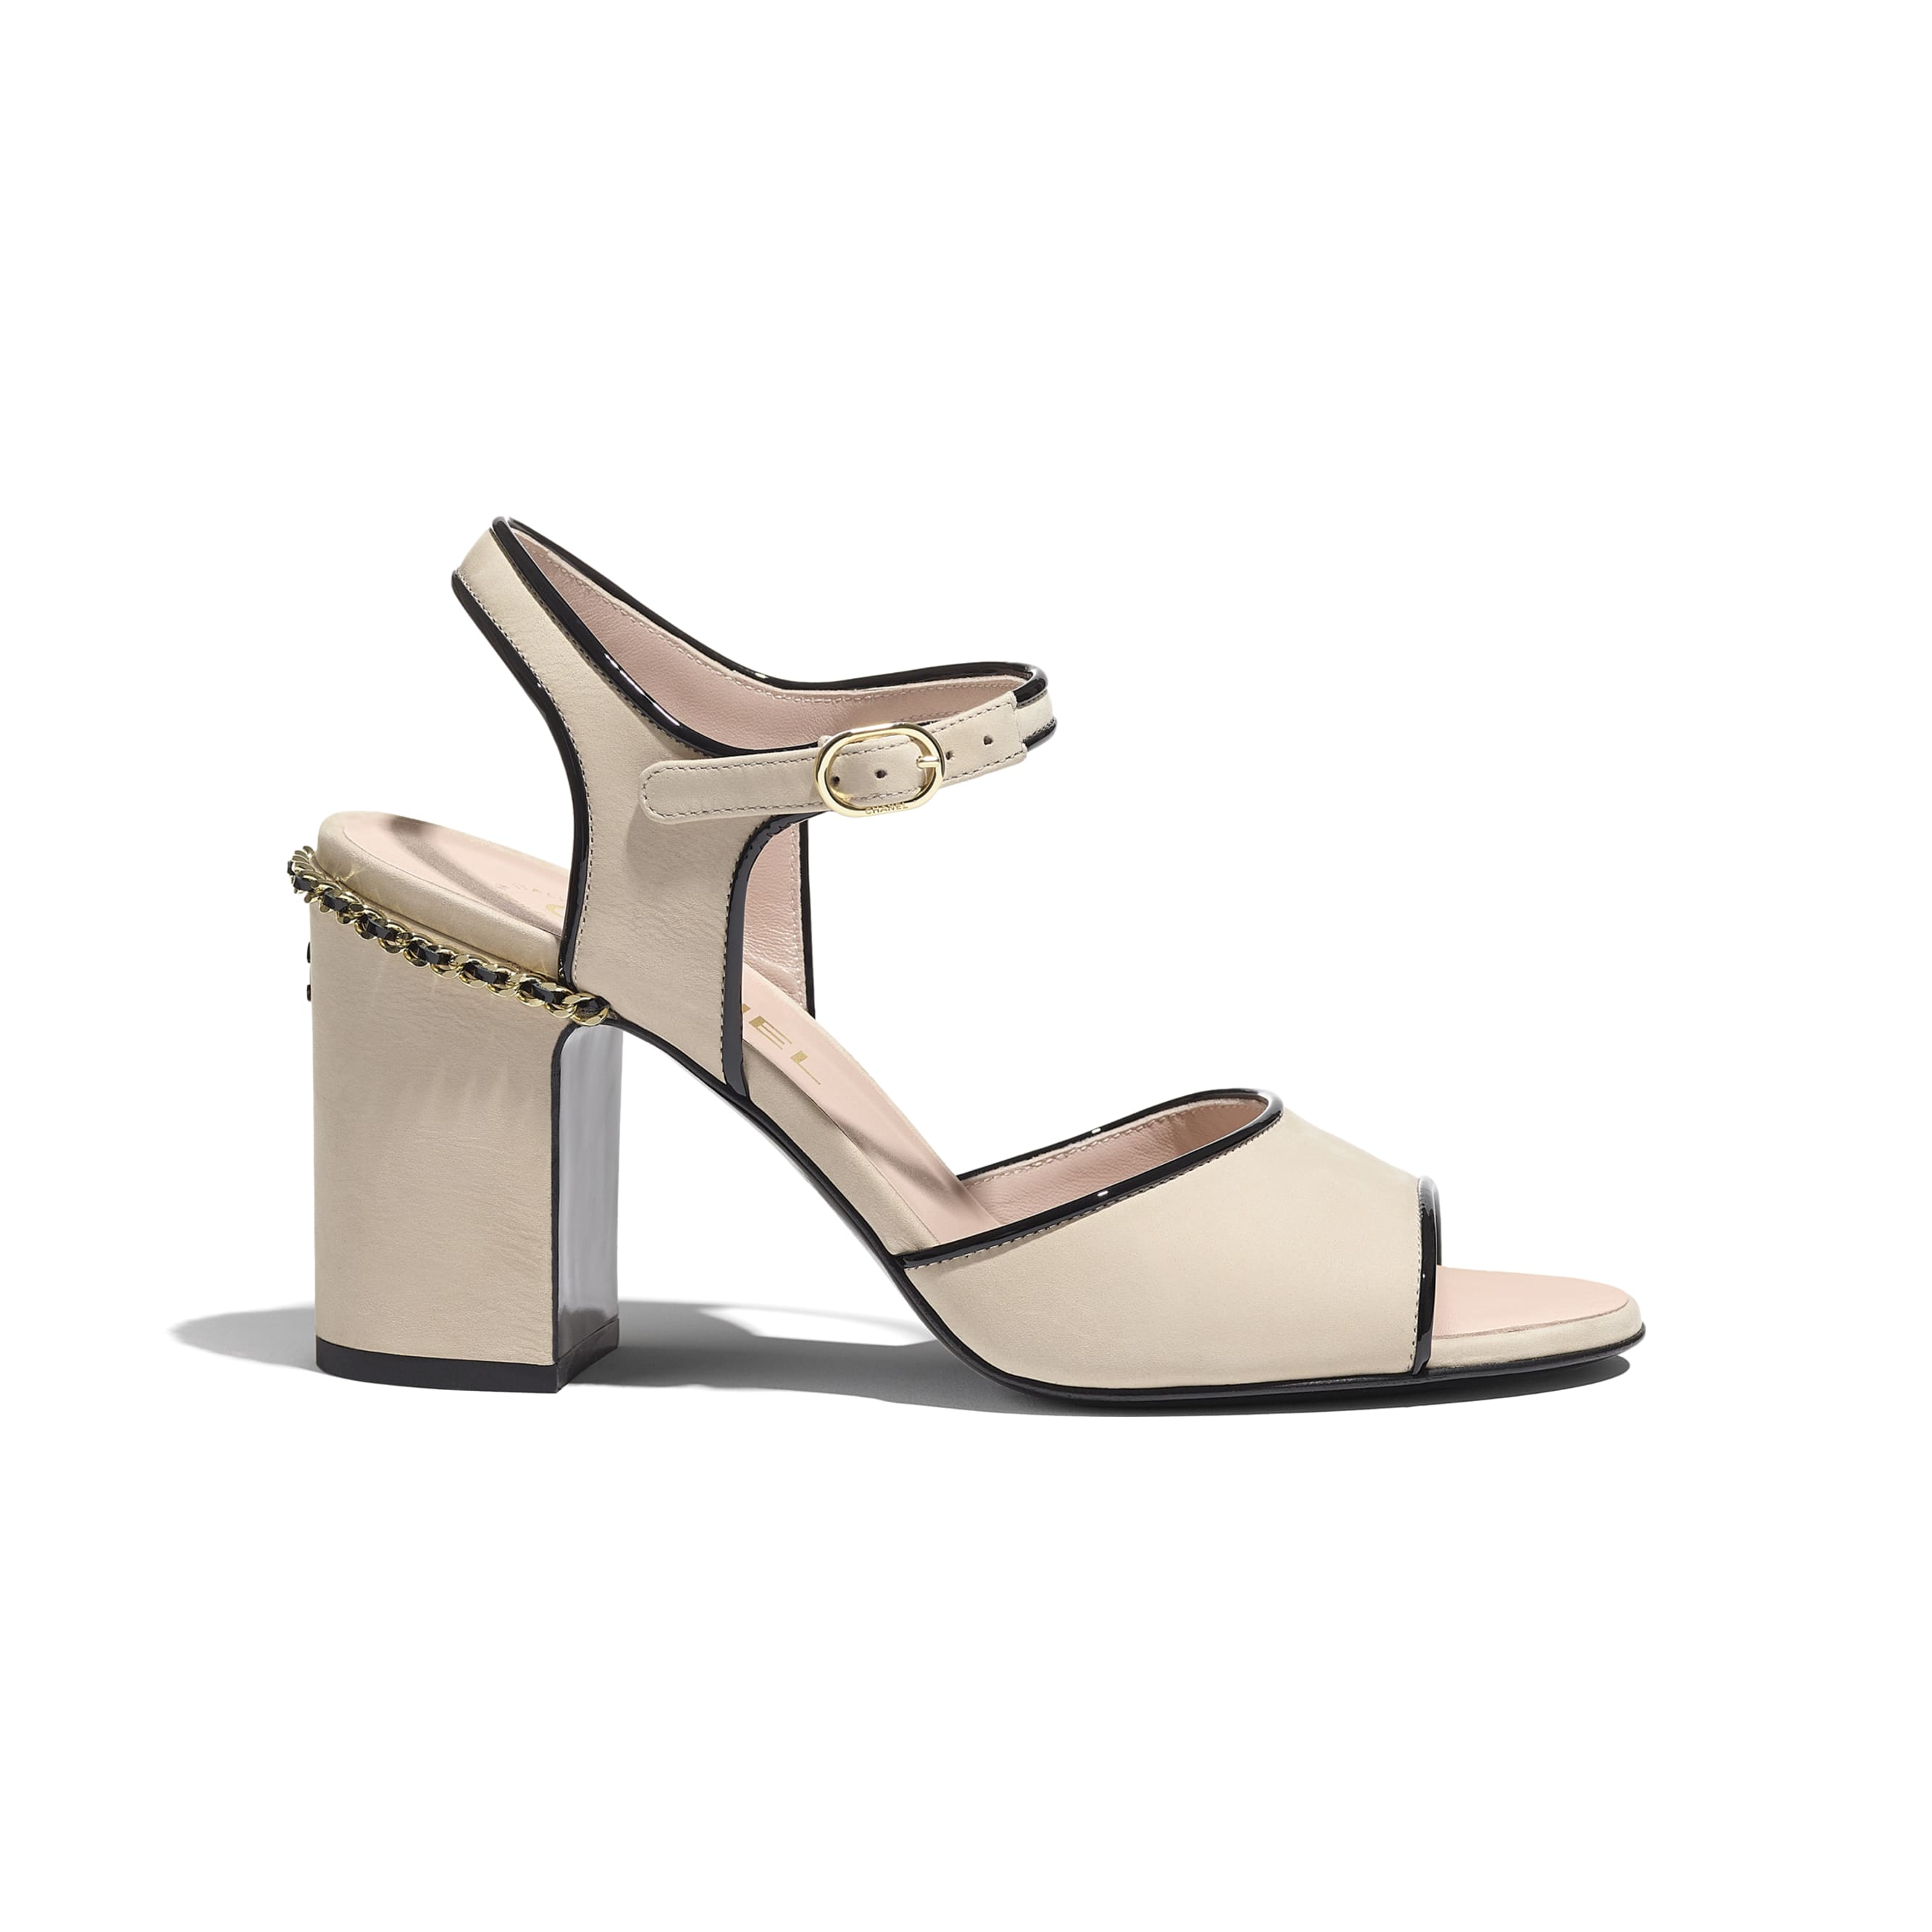 Sandals - Beige & Black - Matte Velvet Calfskin - CHANEL - Default view - see standard sized version